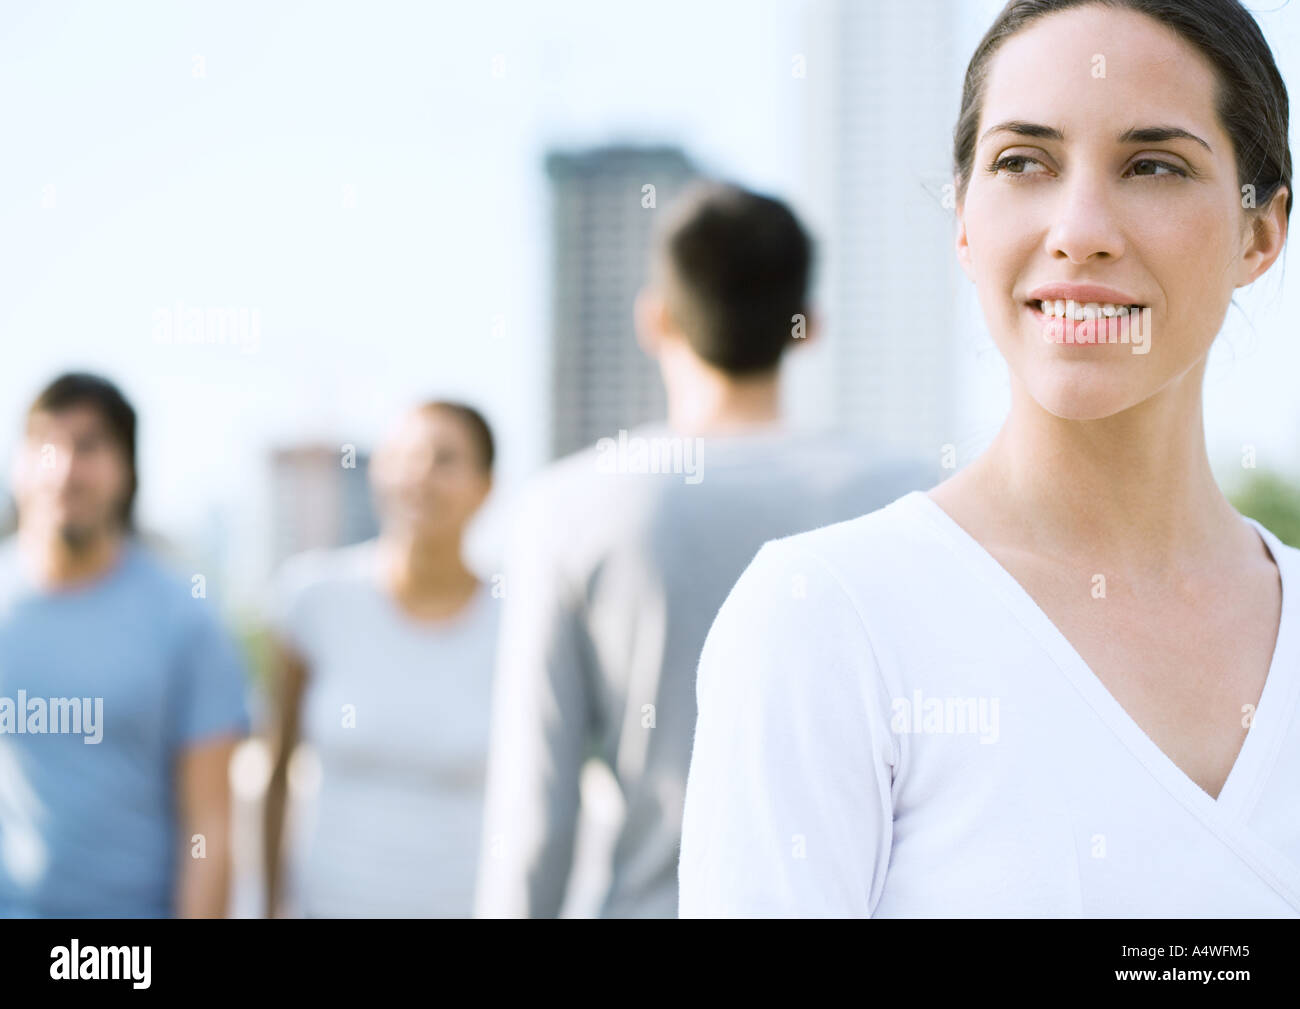 Young woman looking into distance, in urban setting - Stock Image